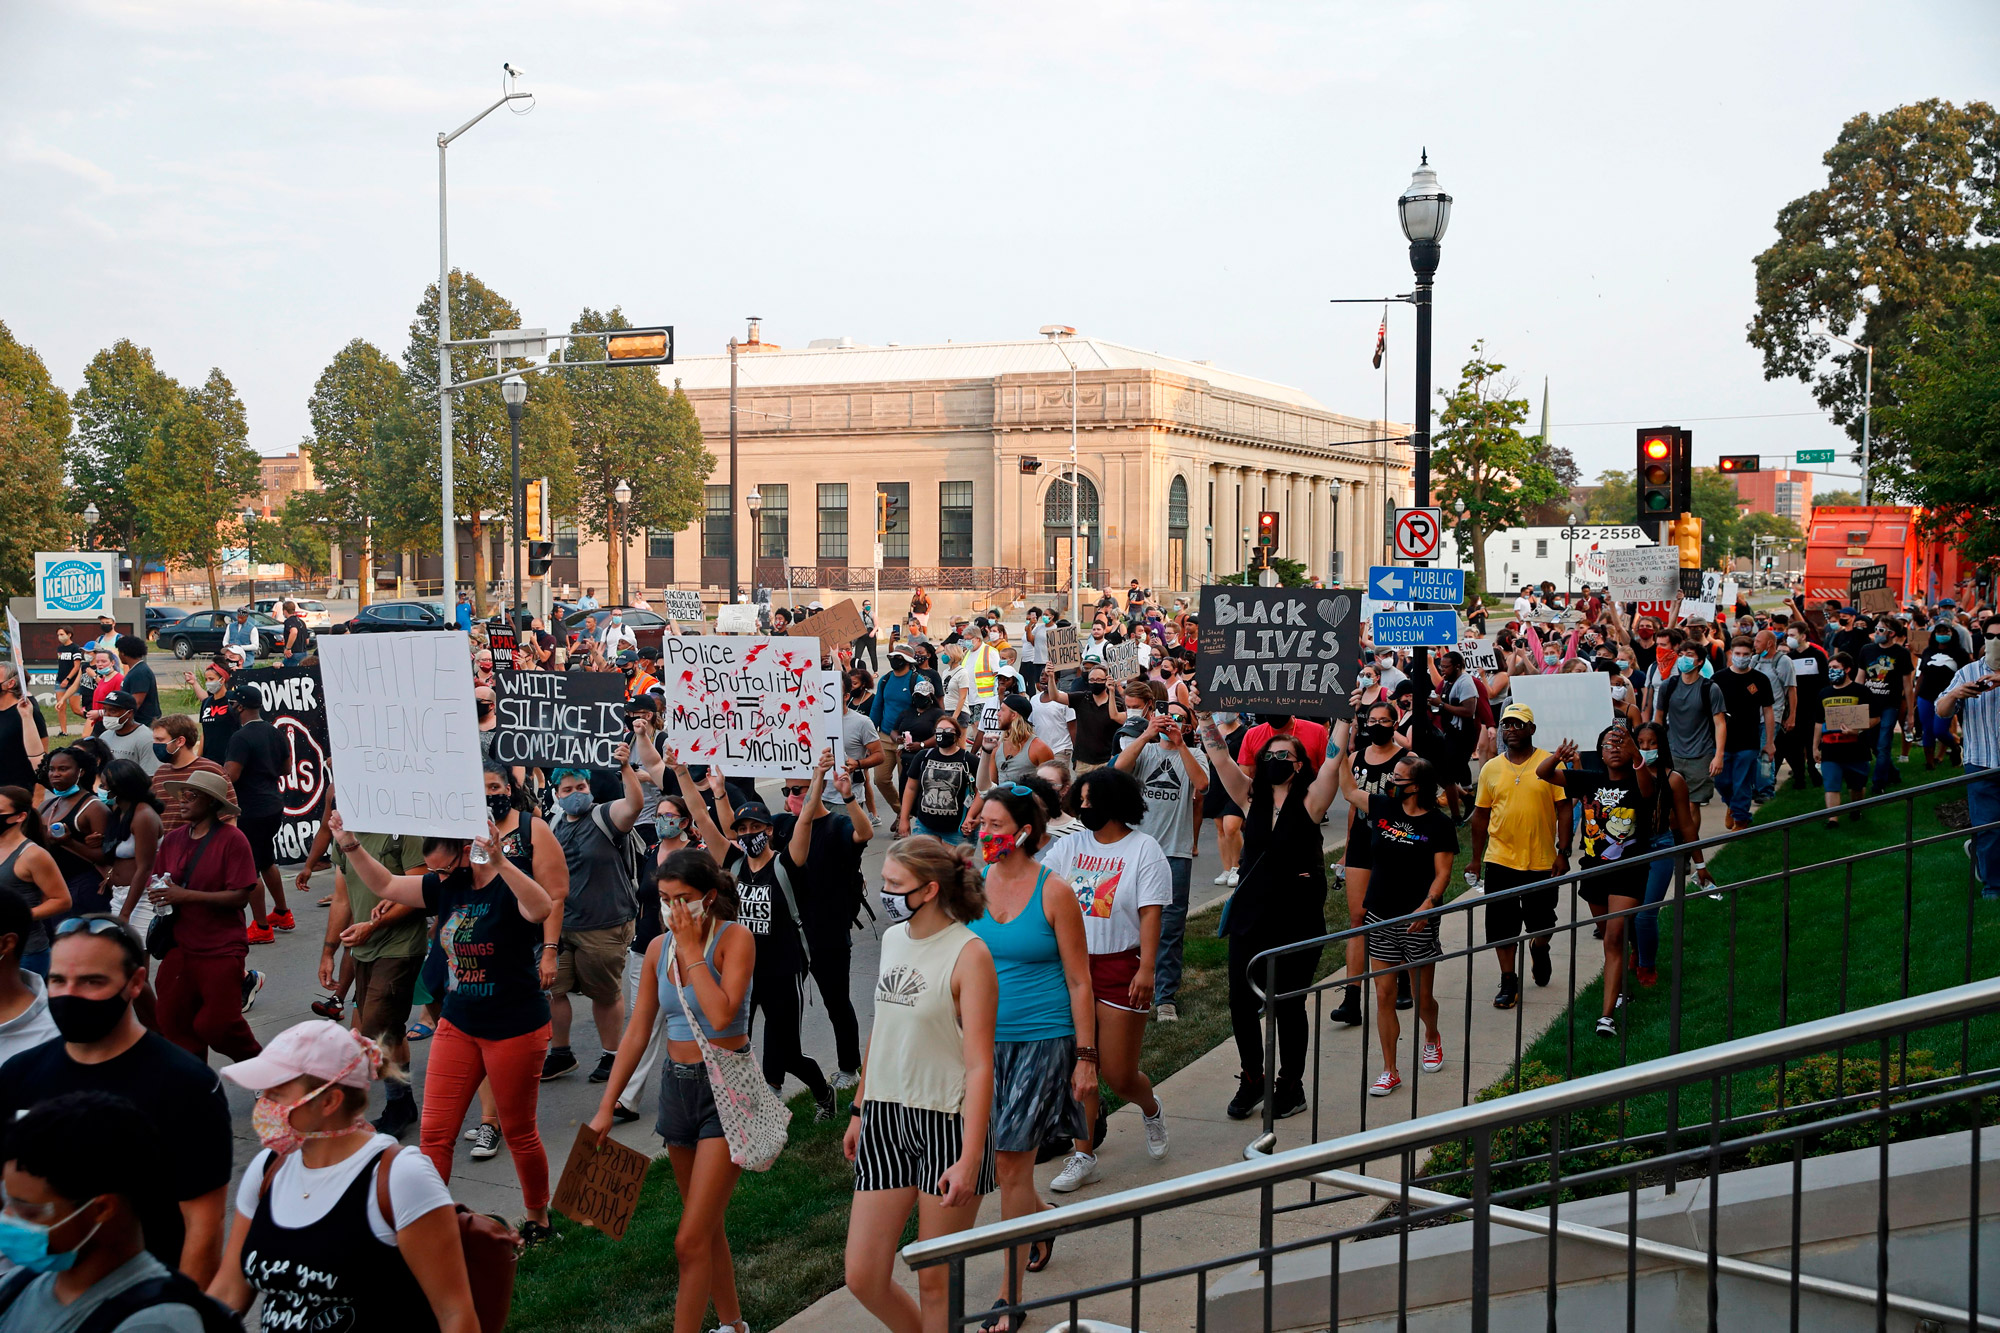 Protesters march to demonstrate against the shooting of Jacob Blake in Kenosha, Wisconsin, on August 24.